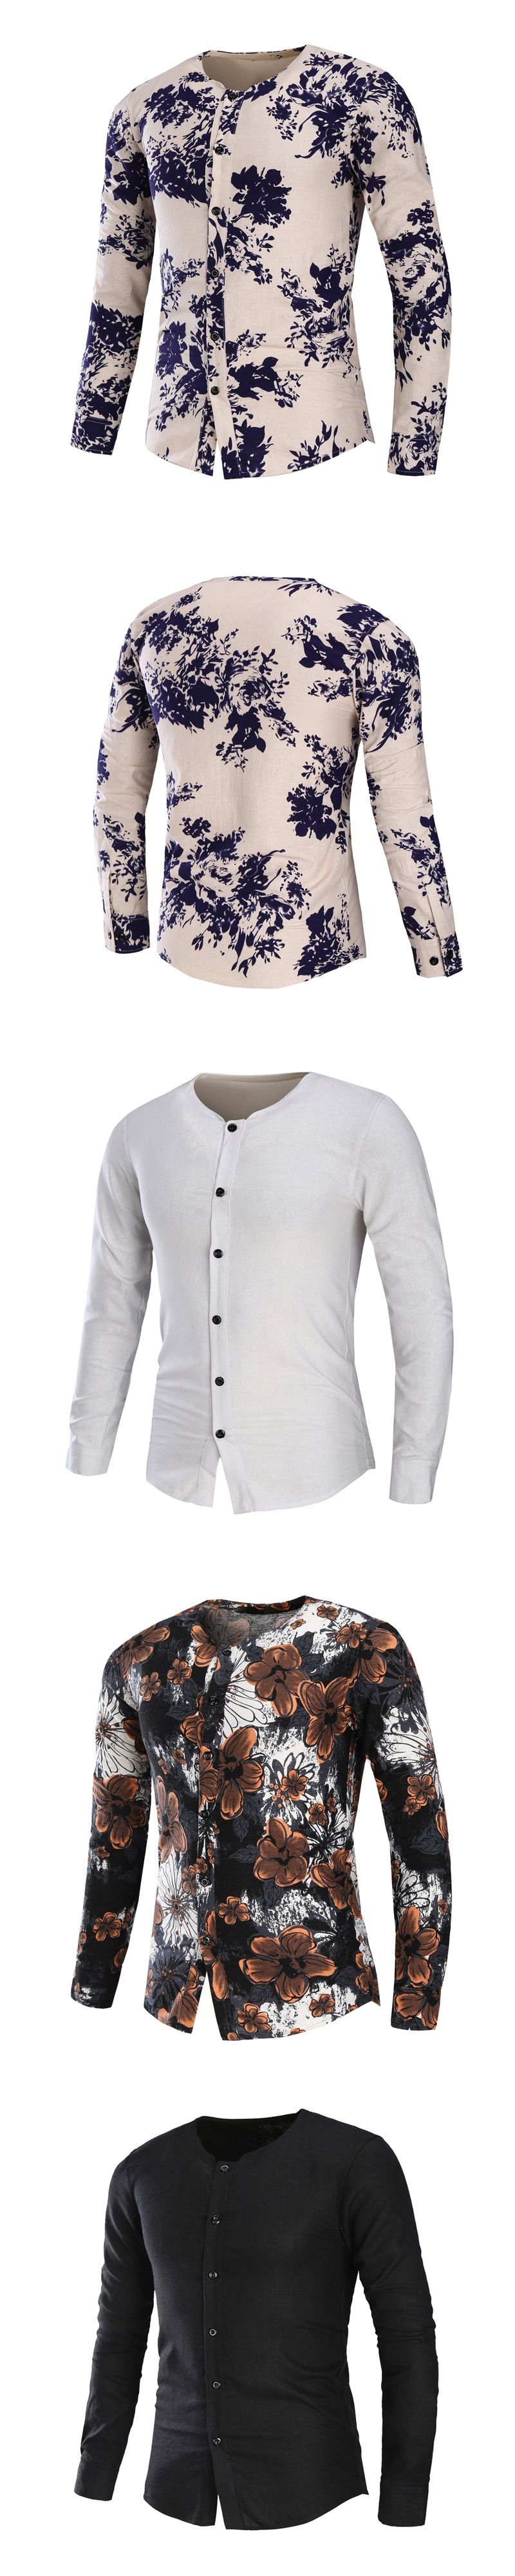 07b1961b452 Thin Long Sleeve Shirts For Summer - Cotswold Hire